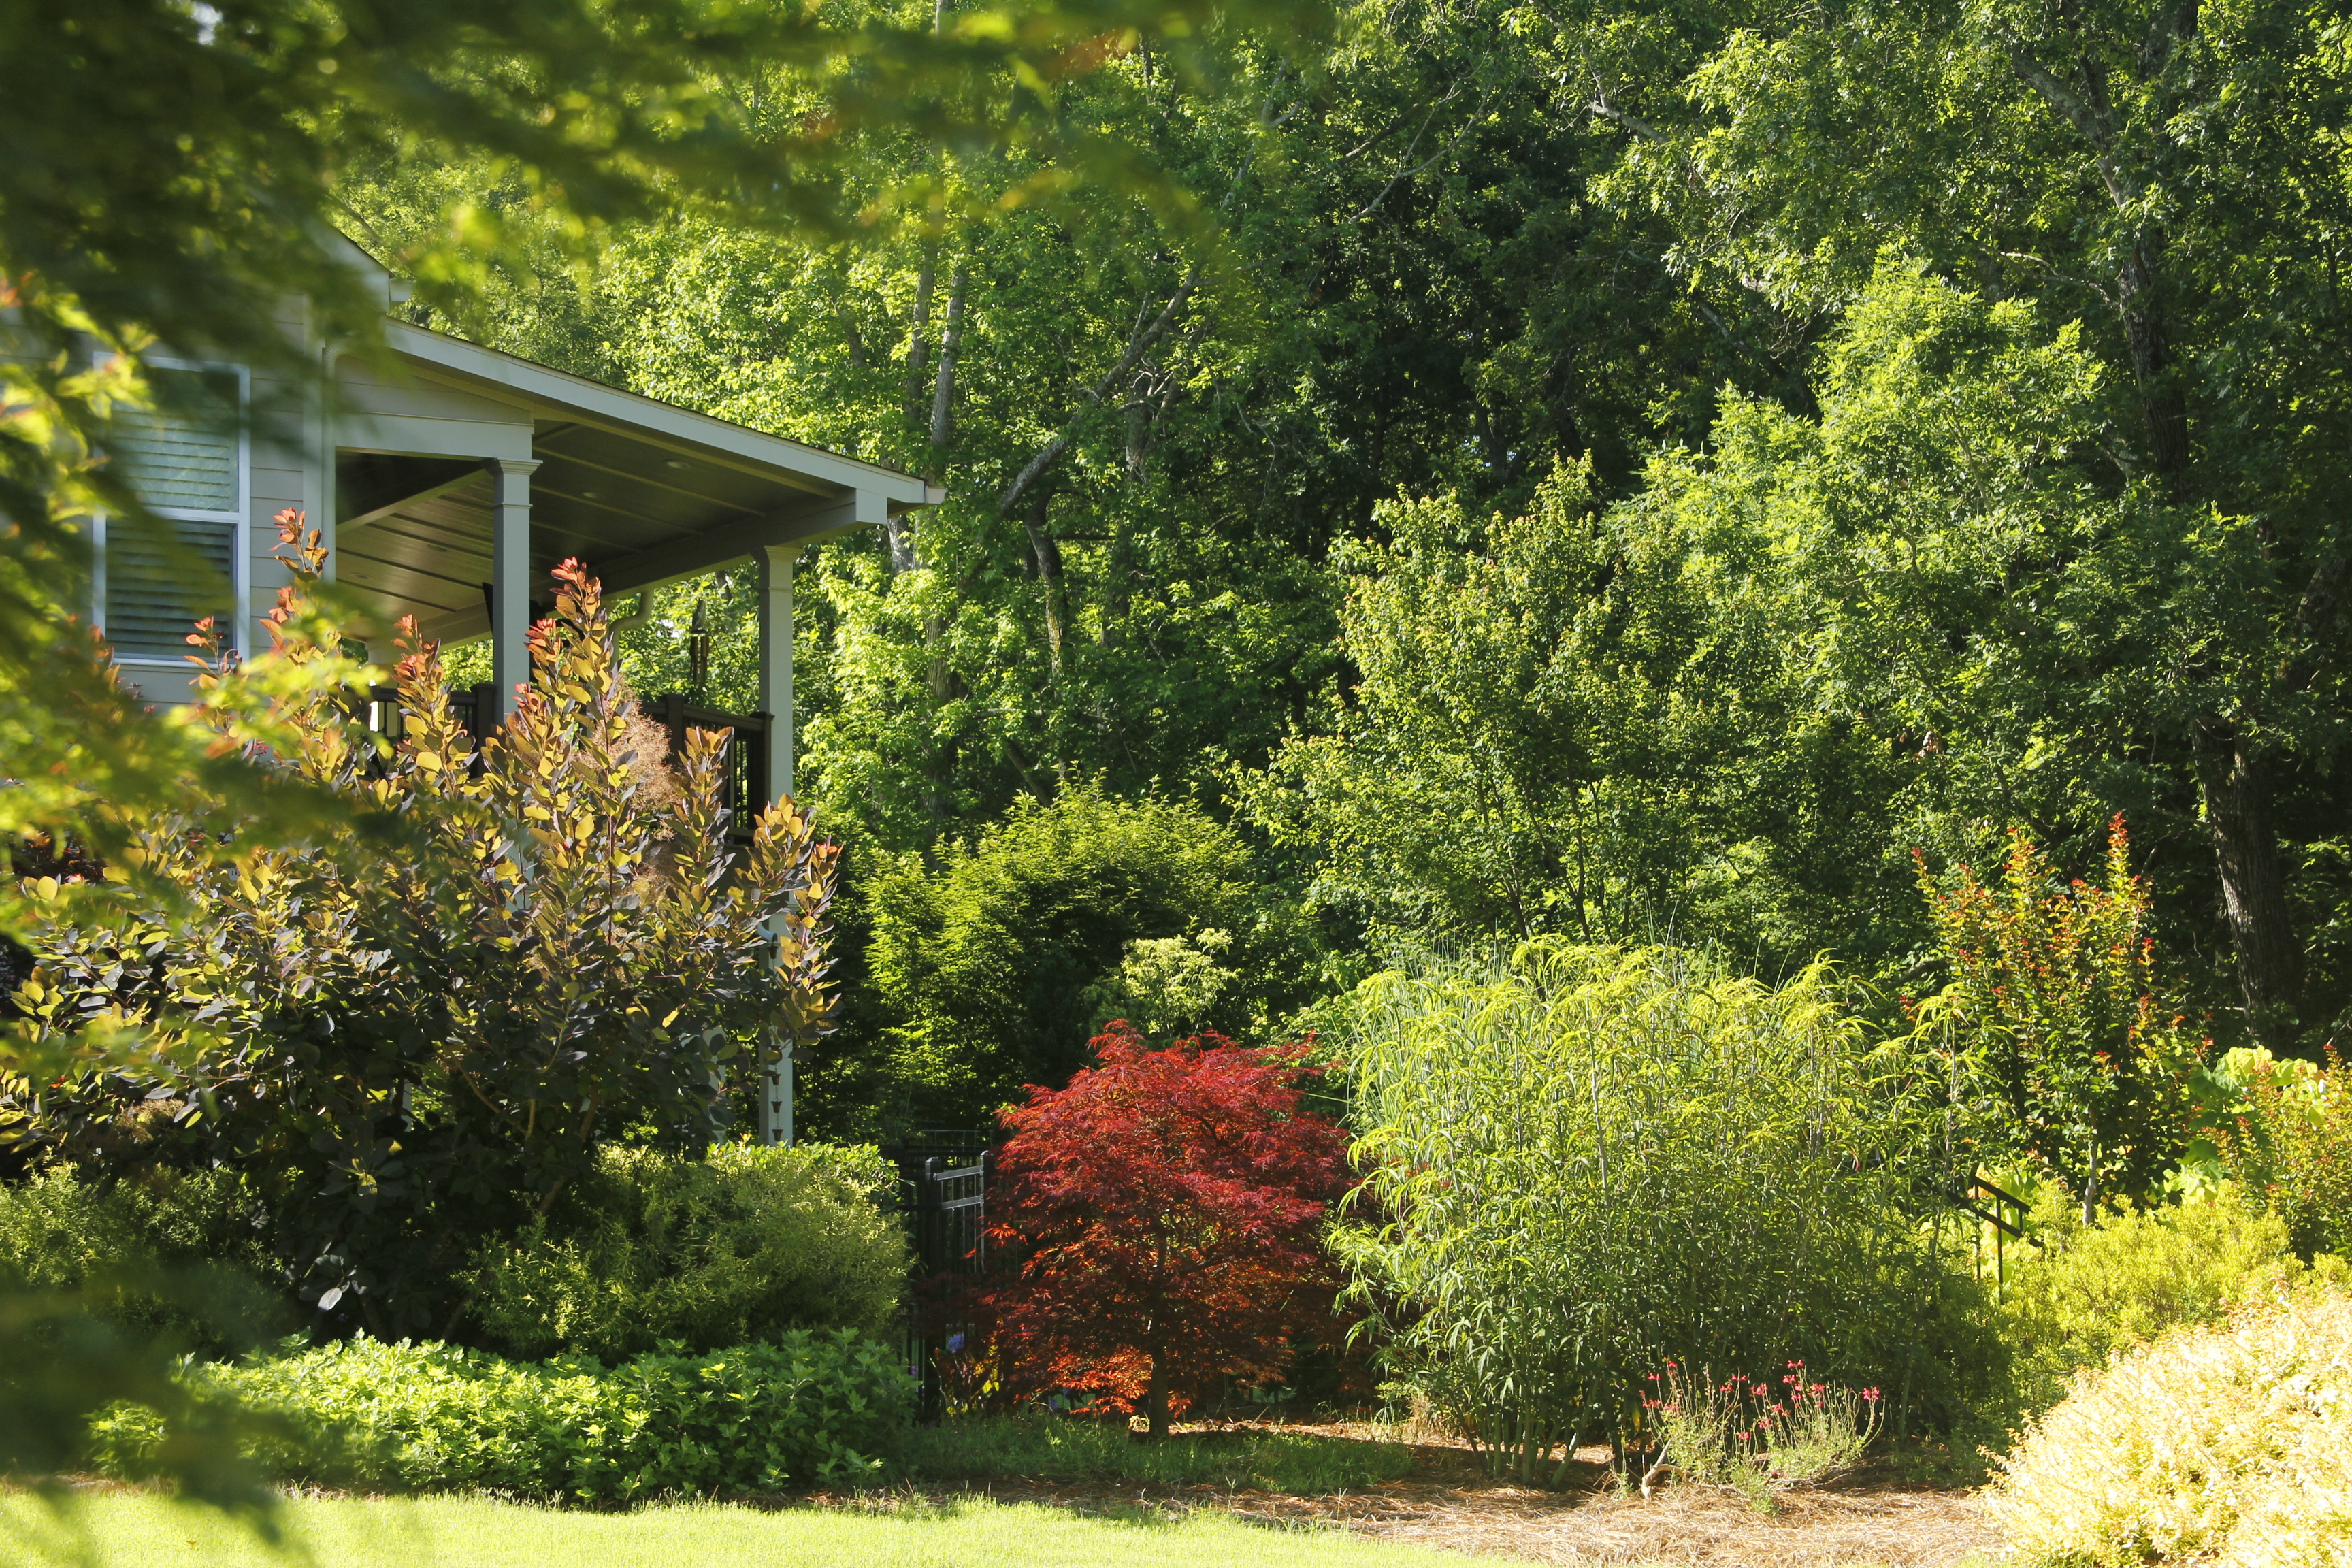 Top local Residential landscaping company near me - Back yard Landscaping IMG 8846